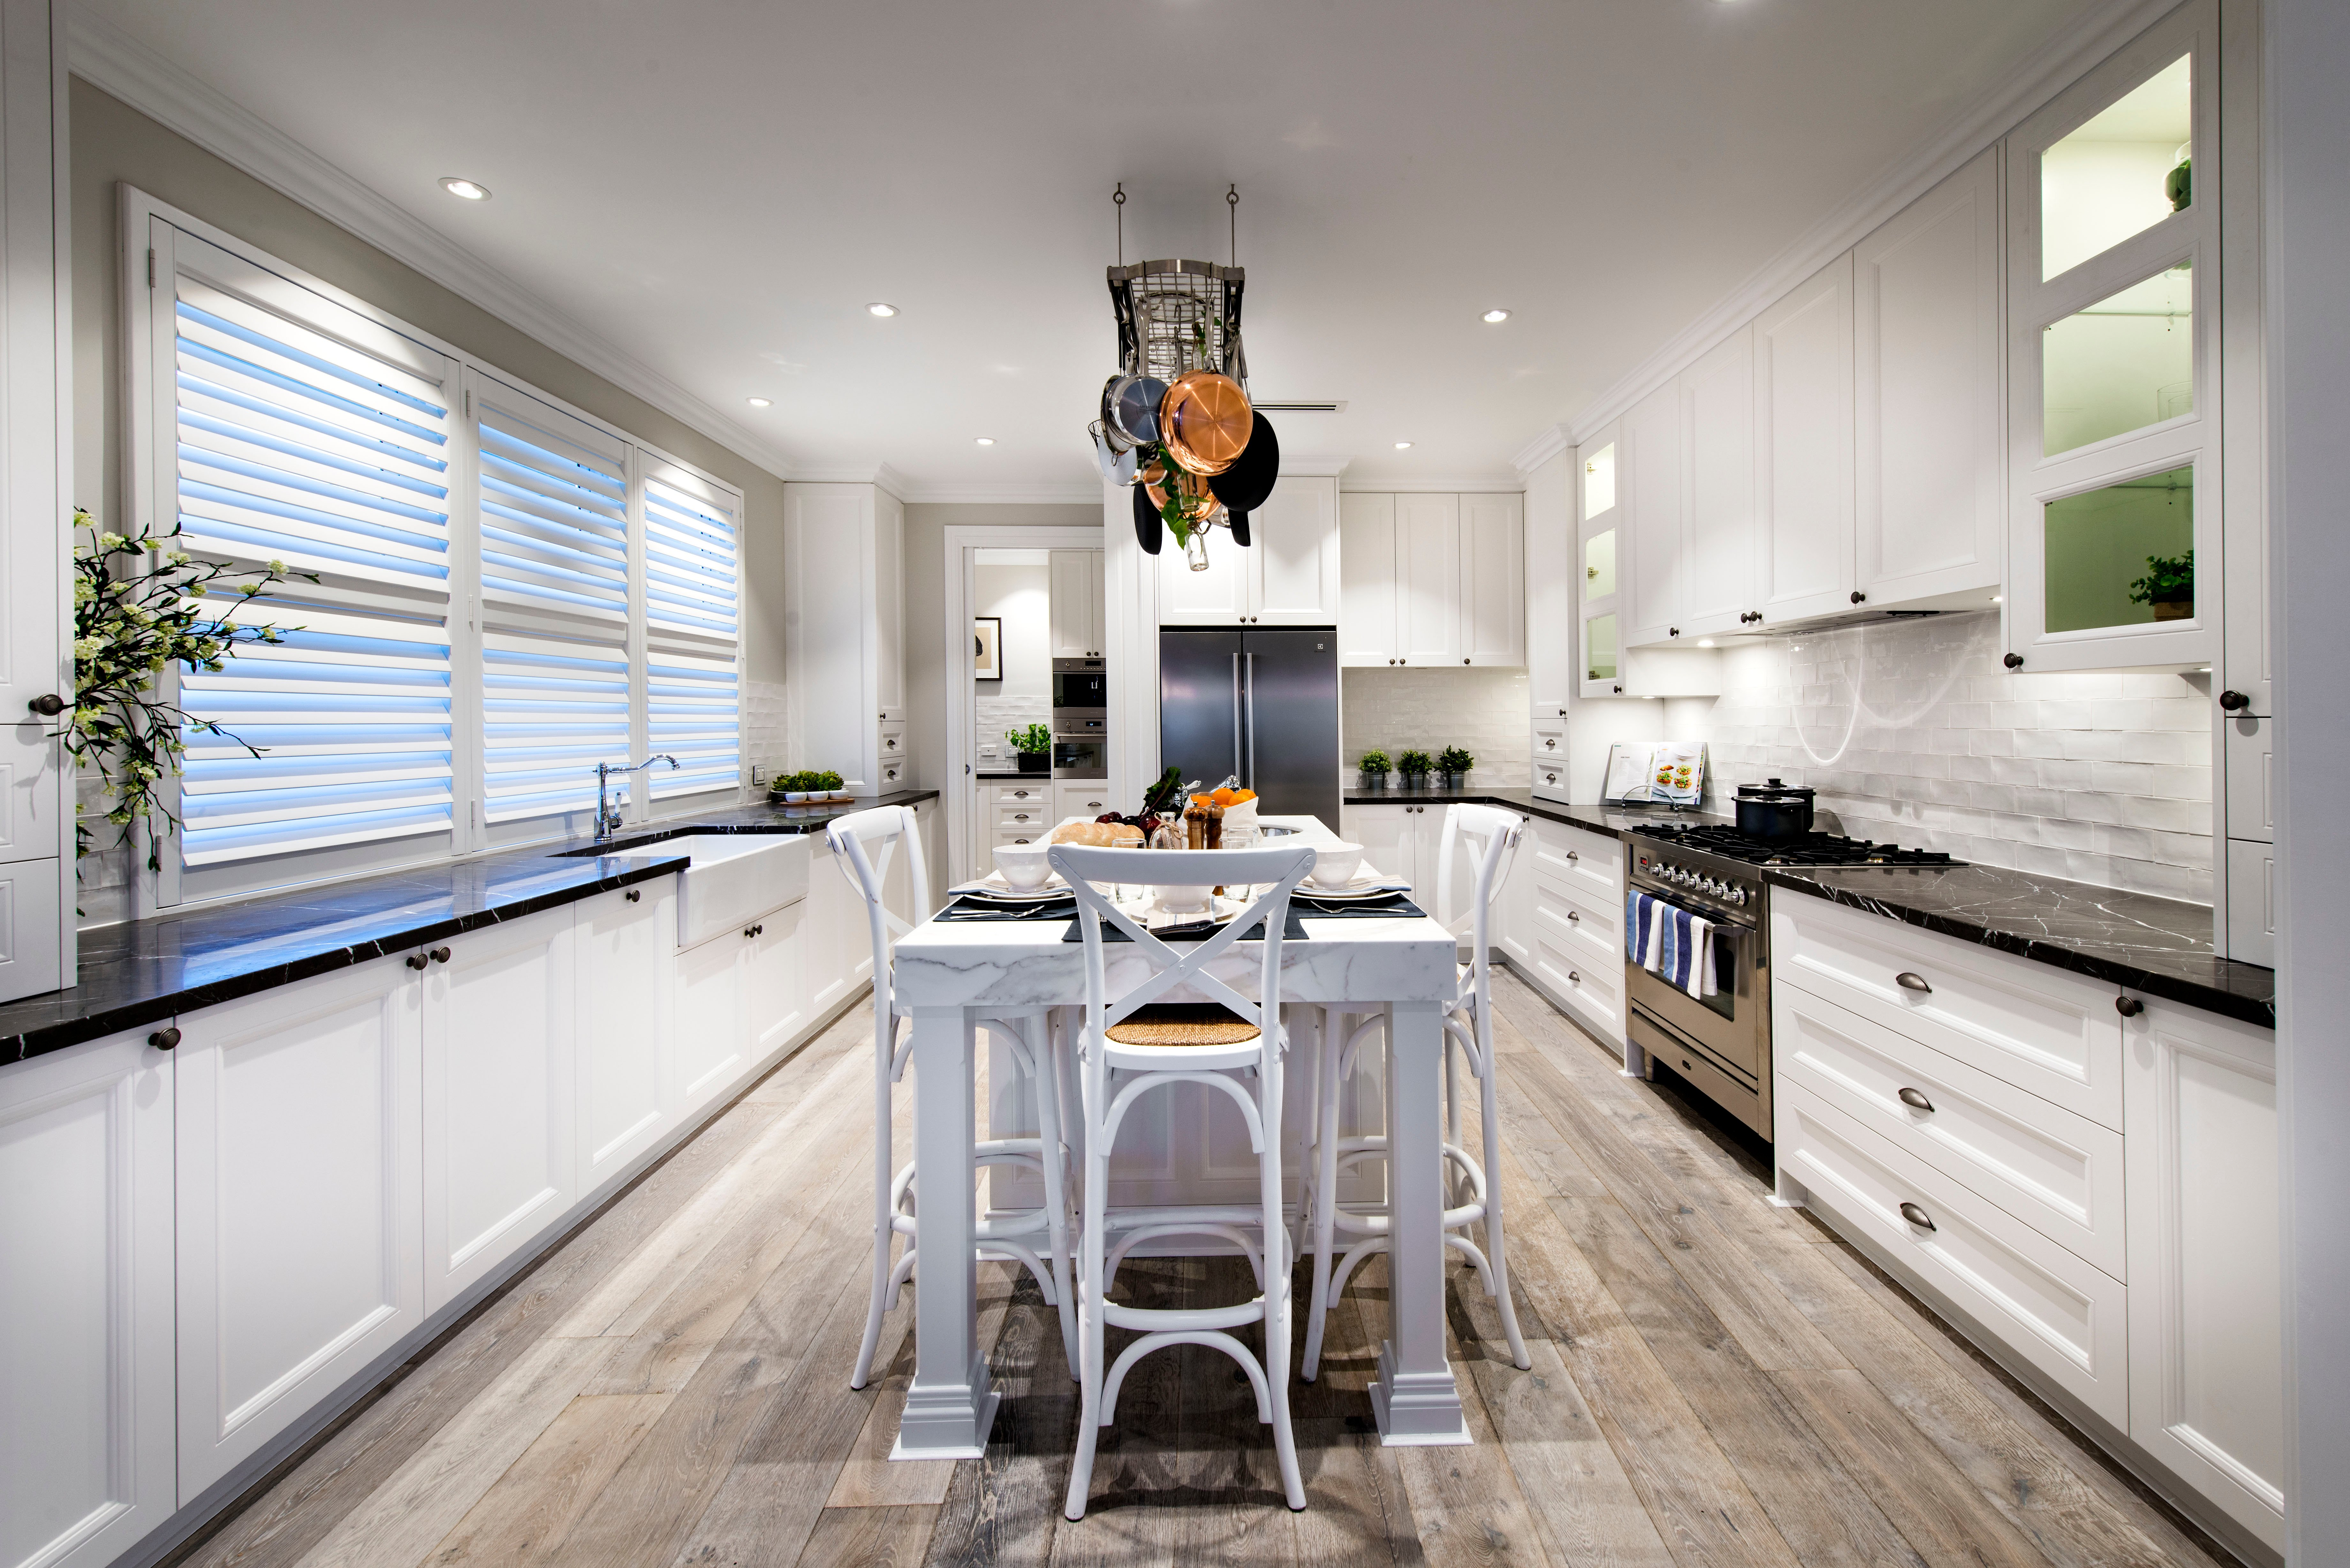 From inside the doorway, it's easier to see the sheer size of the kitchen. Large cabinets and drawers line the walls, and wall-cabinets provide even more storage space. Through the doorway beyond, the kitchen continues with a double convection oven and even more cabinets.